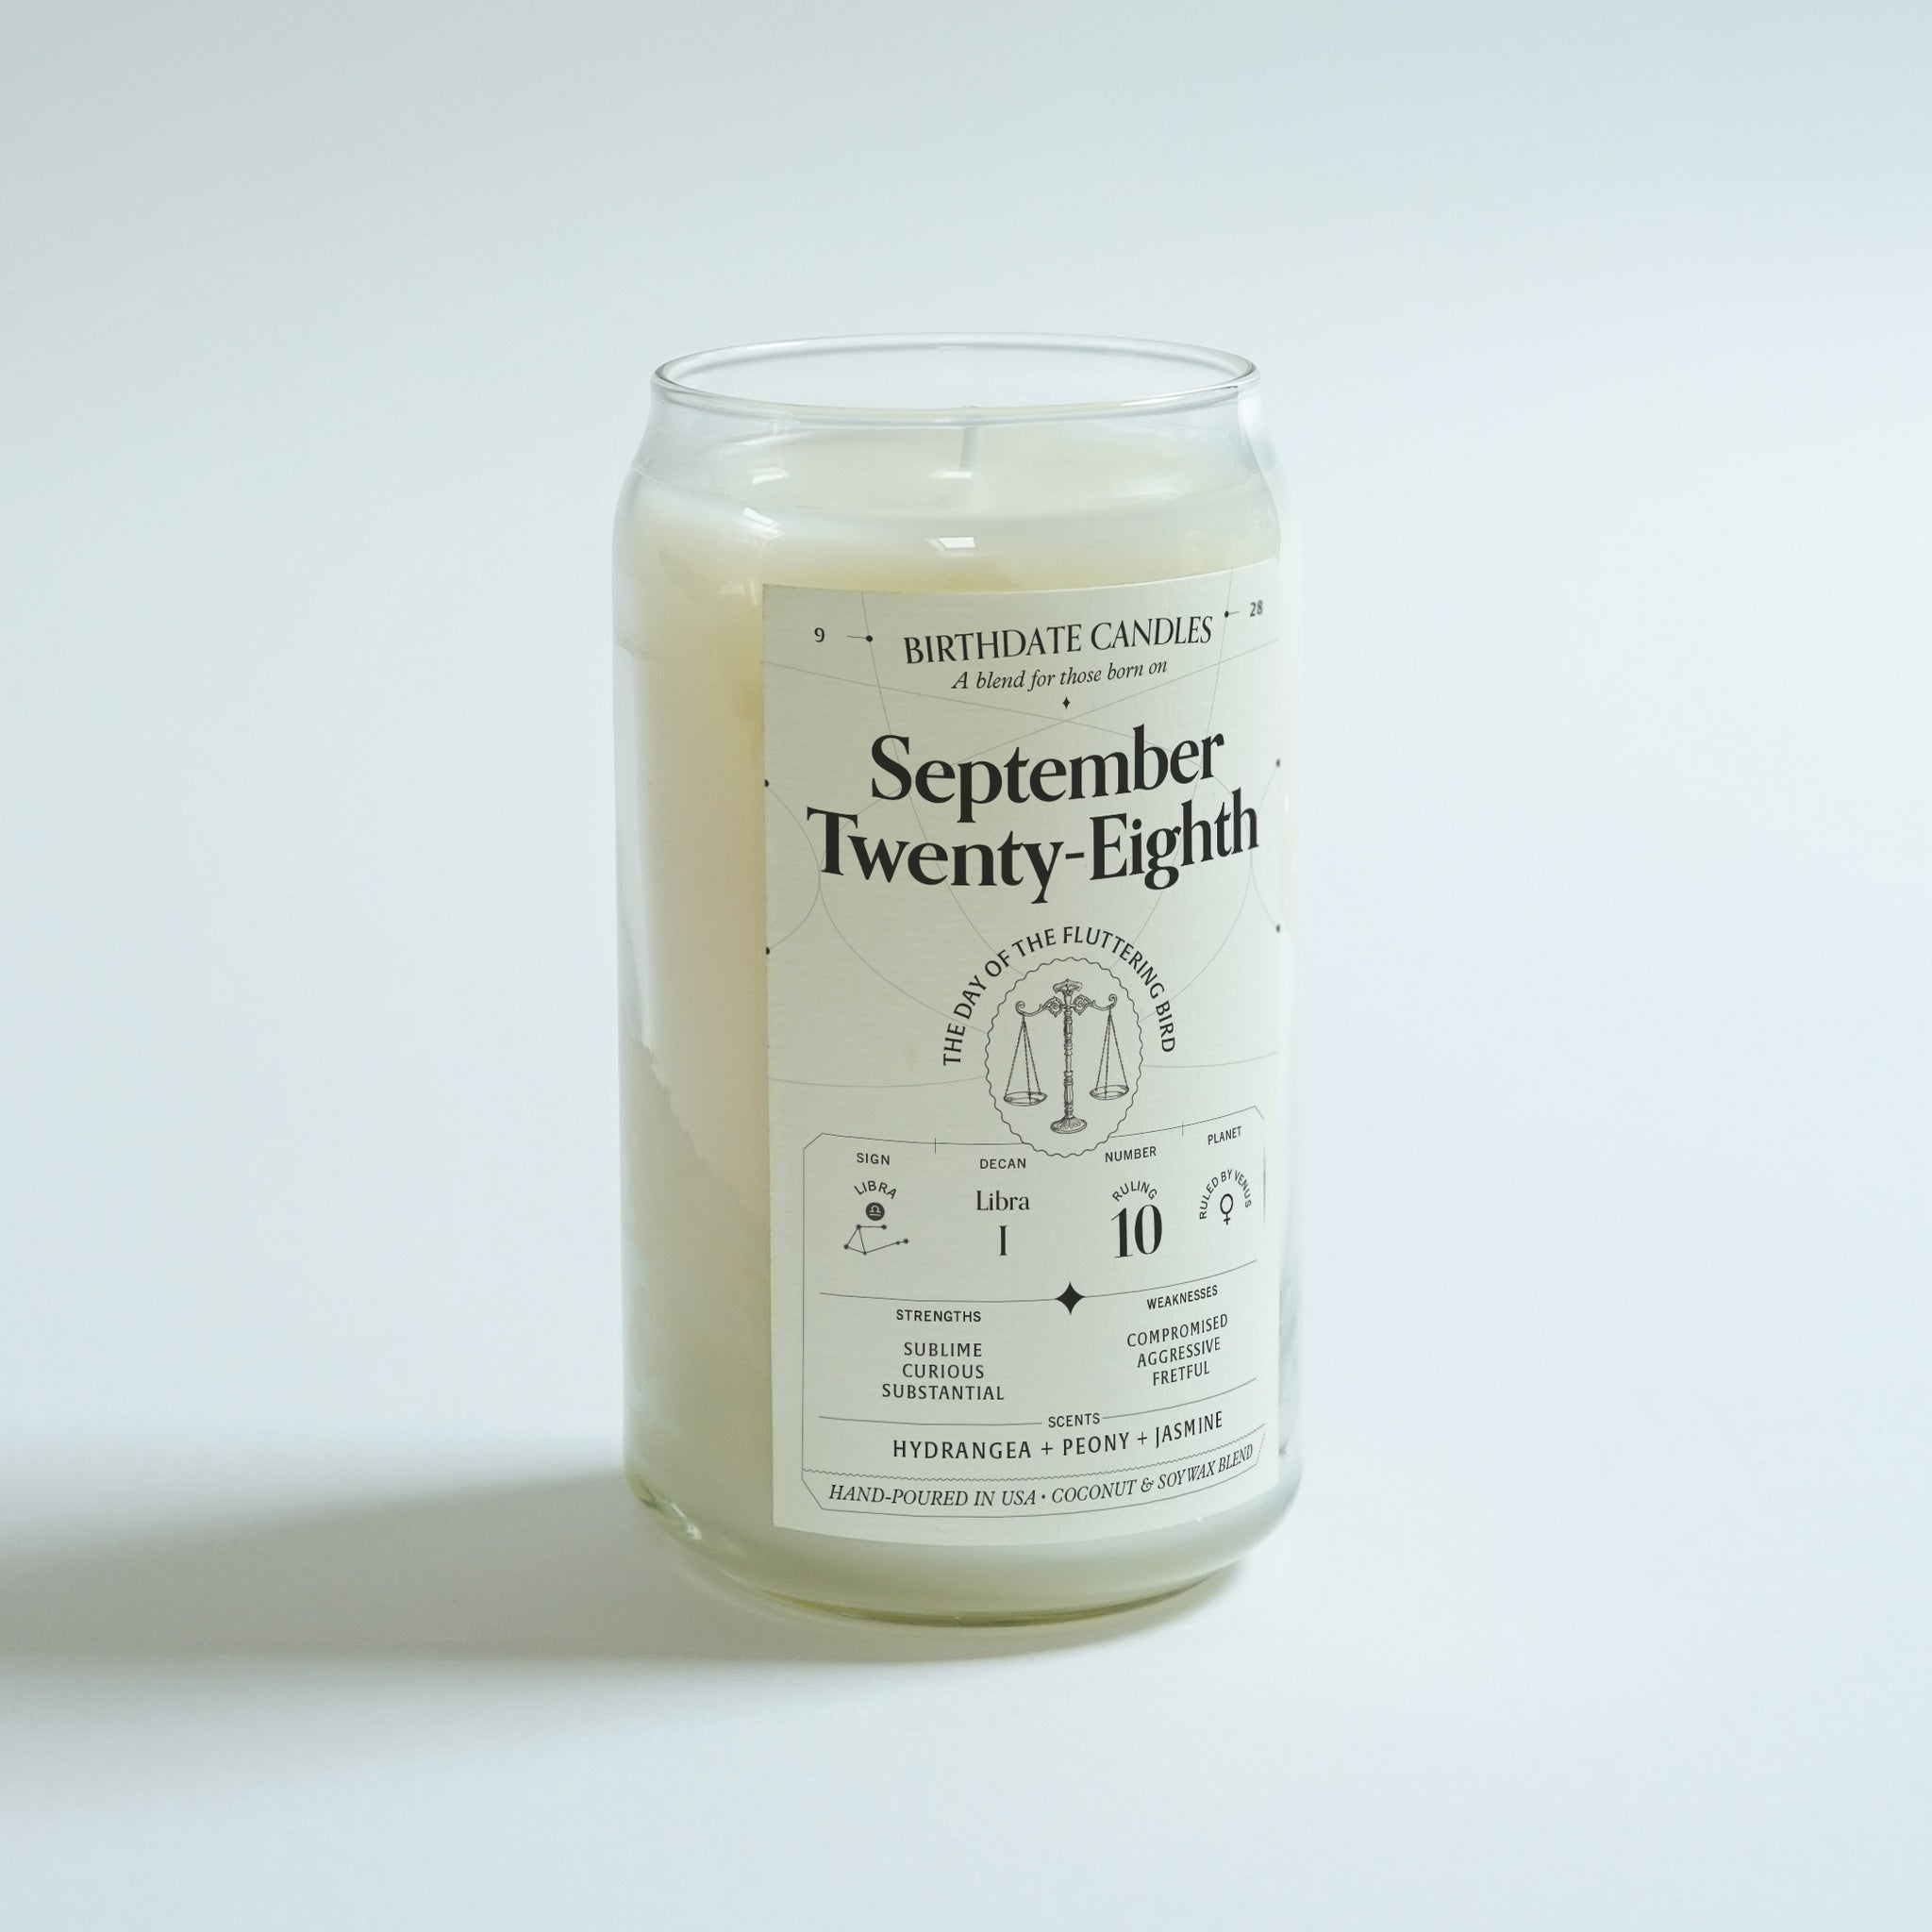 The September Twenty-Eighth Candle